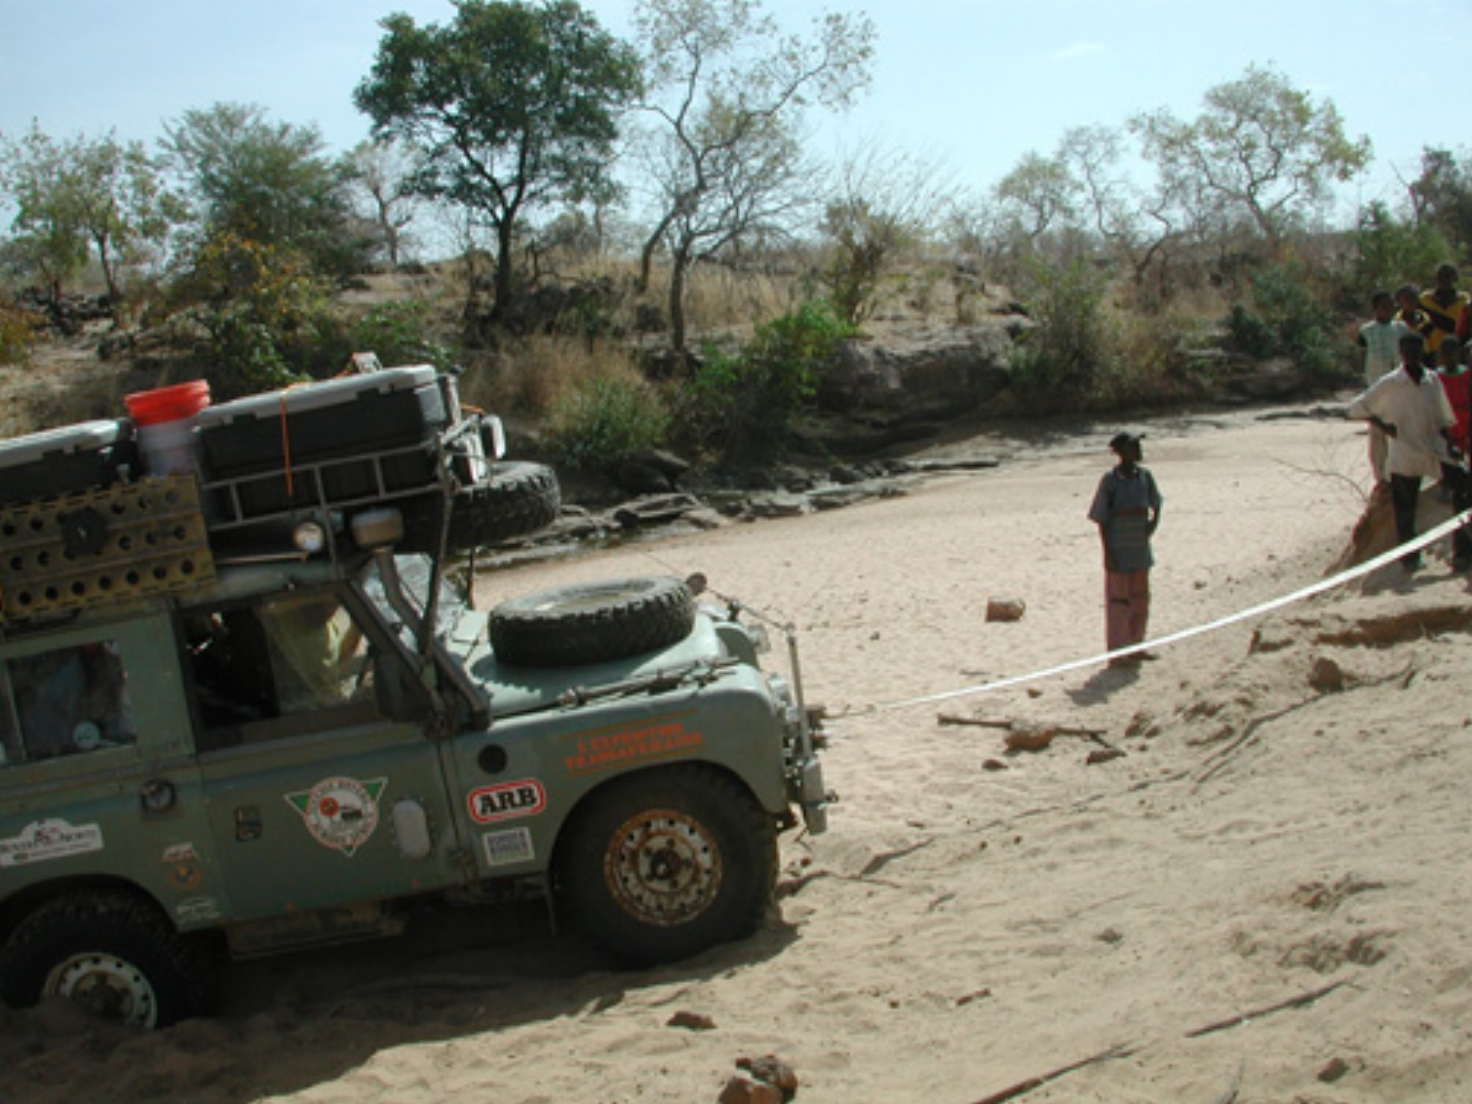 Michael Ladden's Land Rover being winched out in Mali Africa